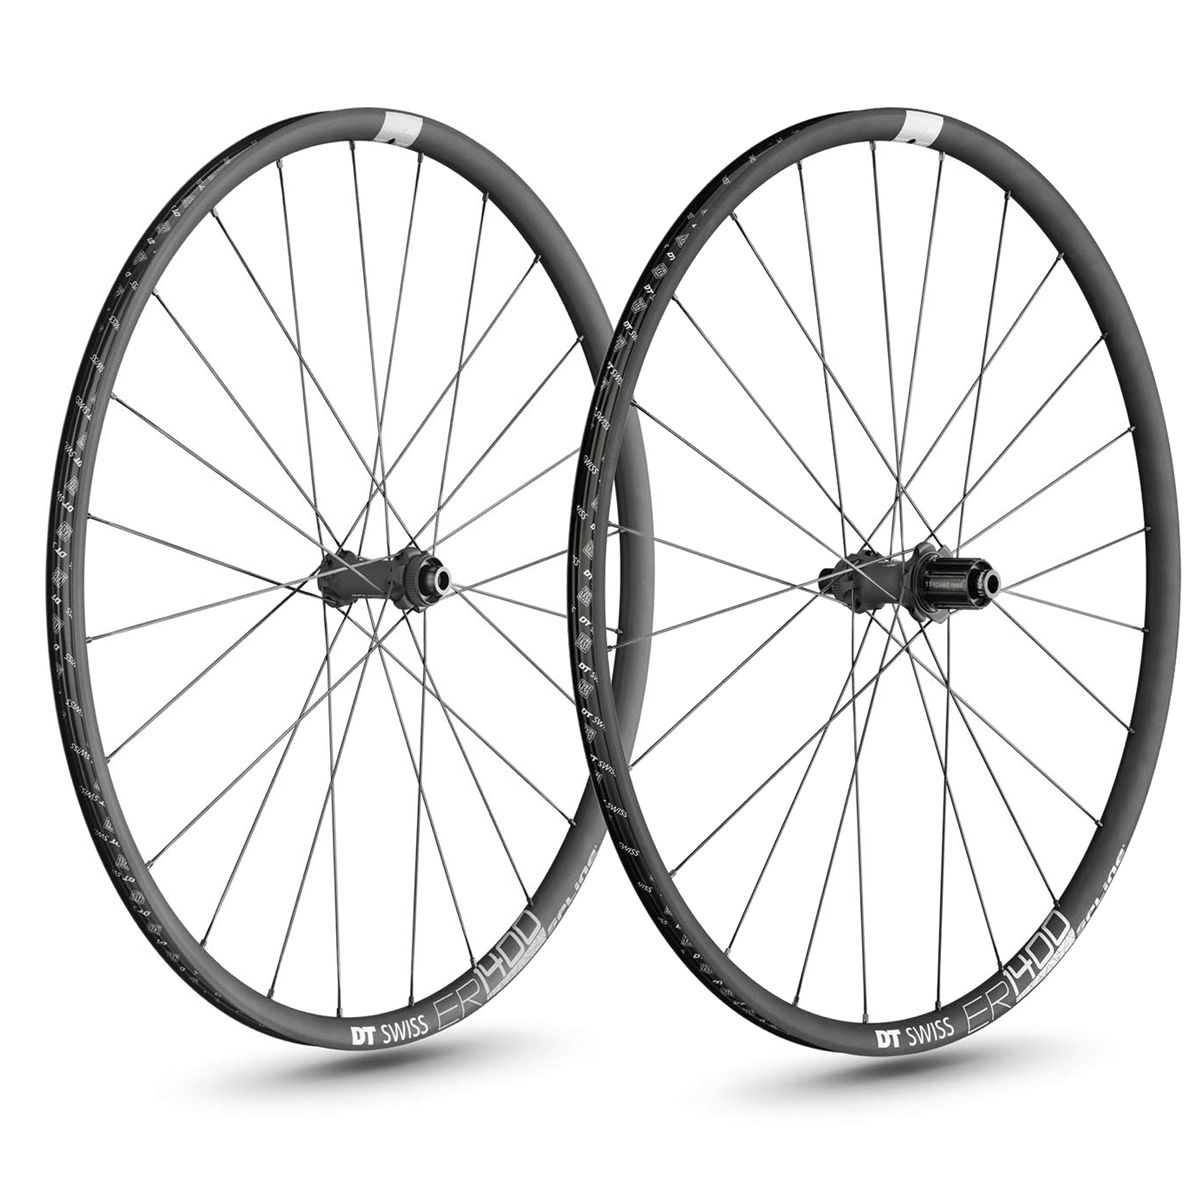 ER 1400 Spline 21 db road wheels 28